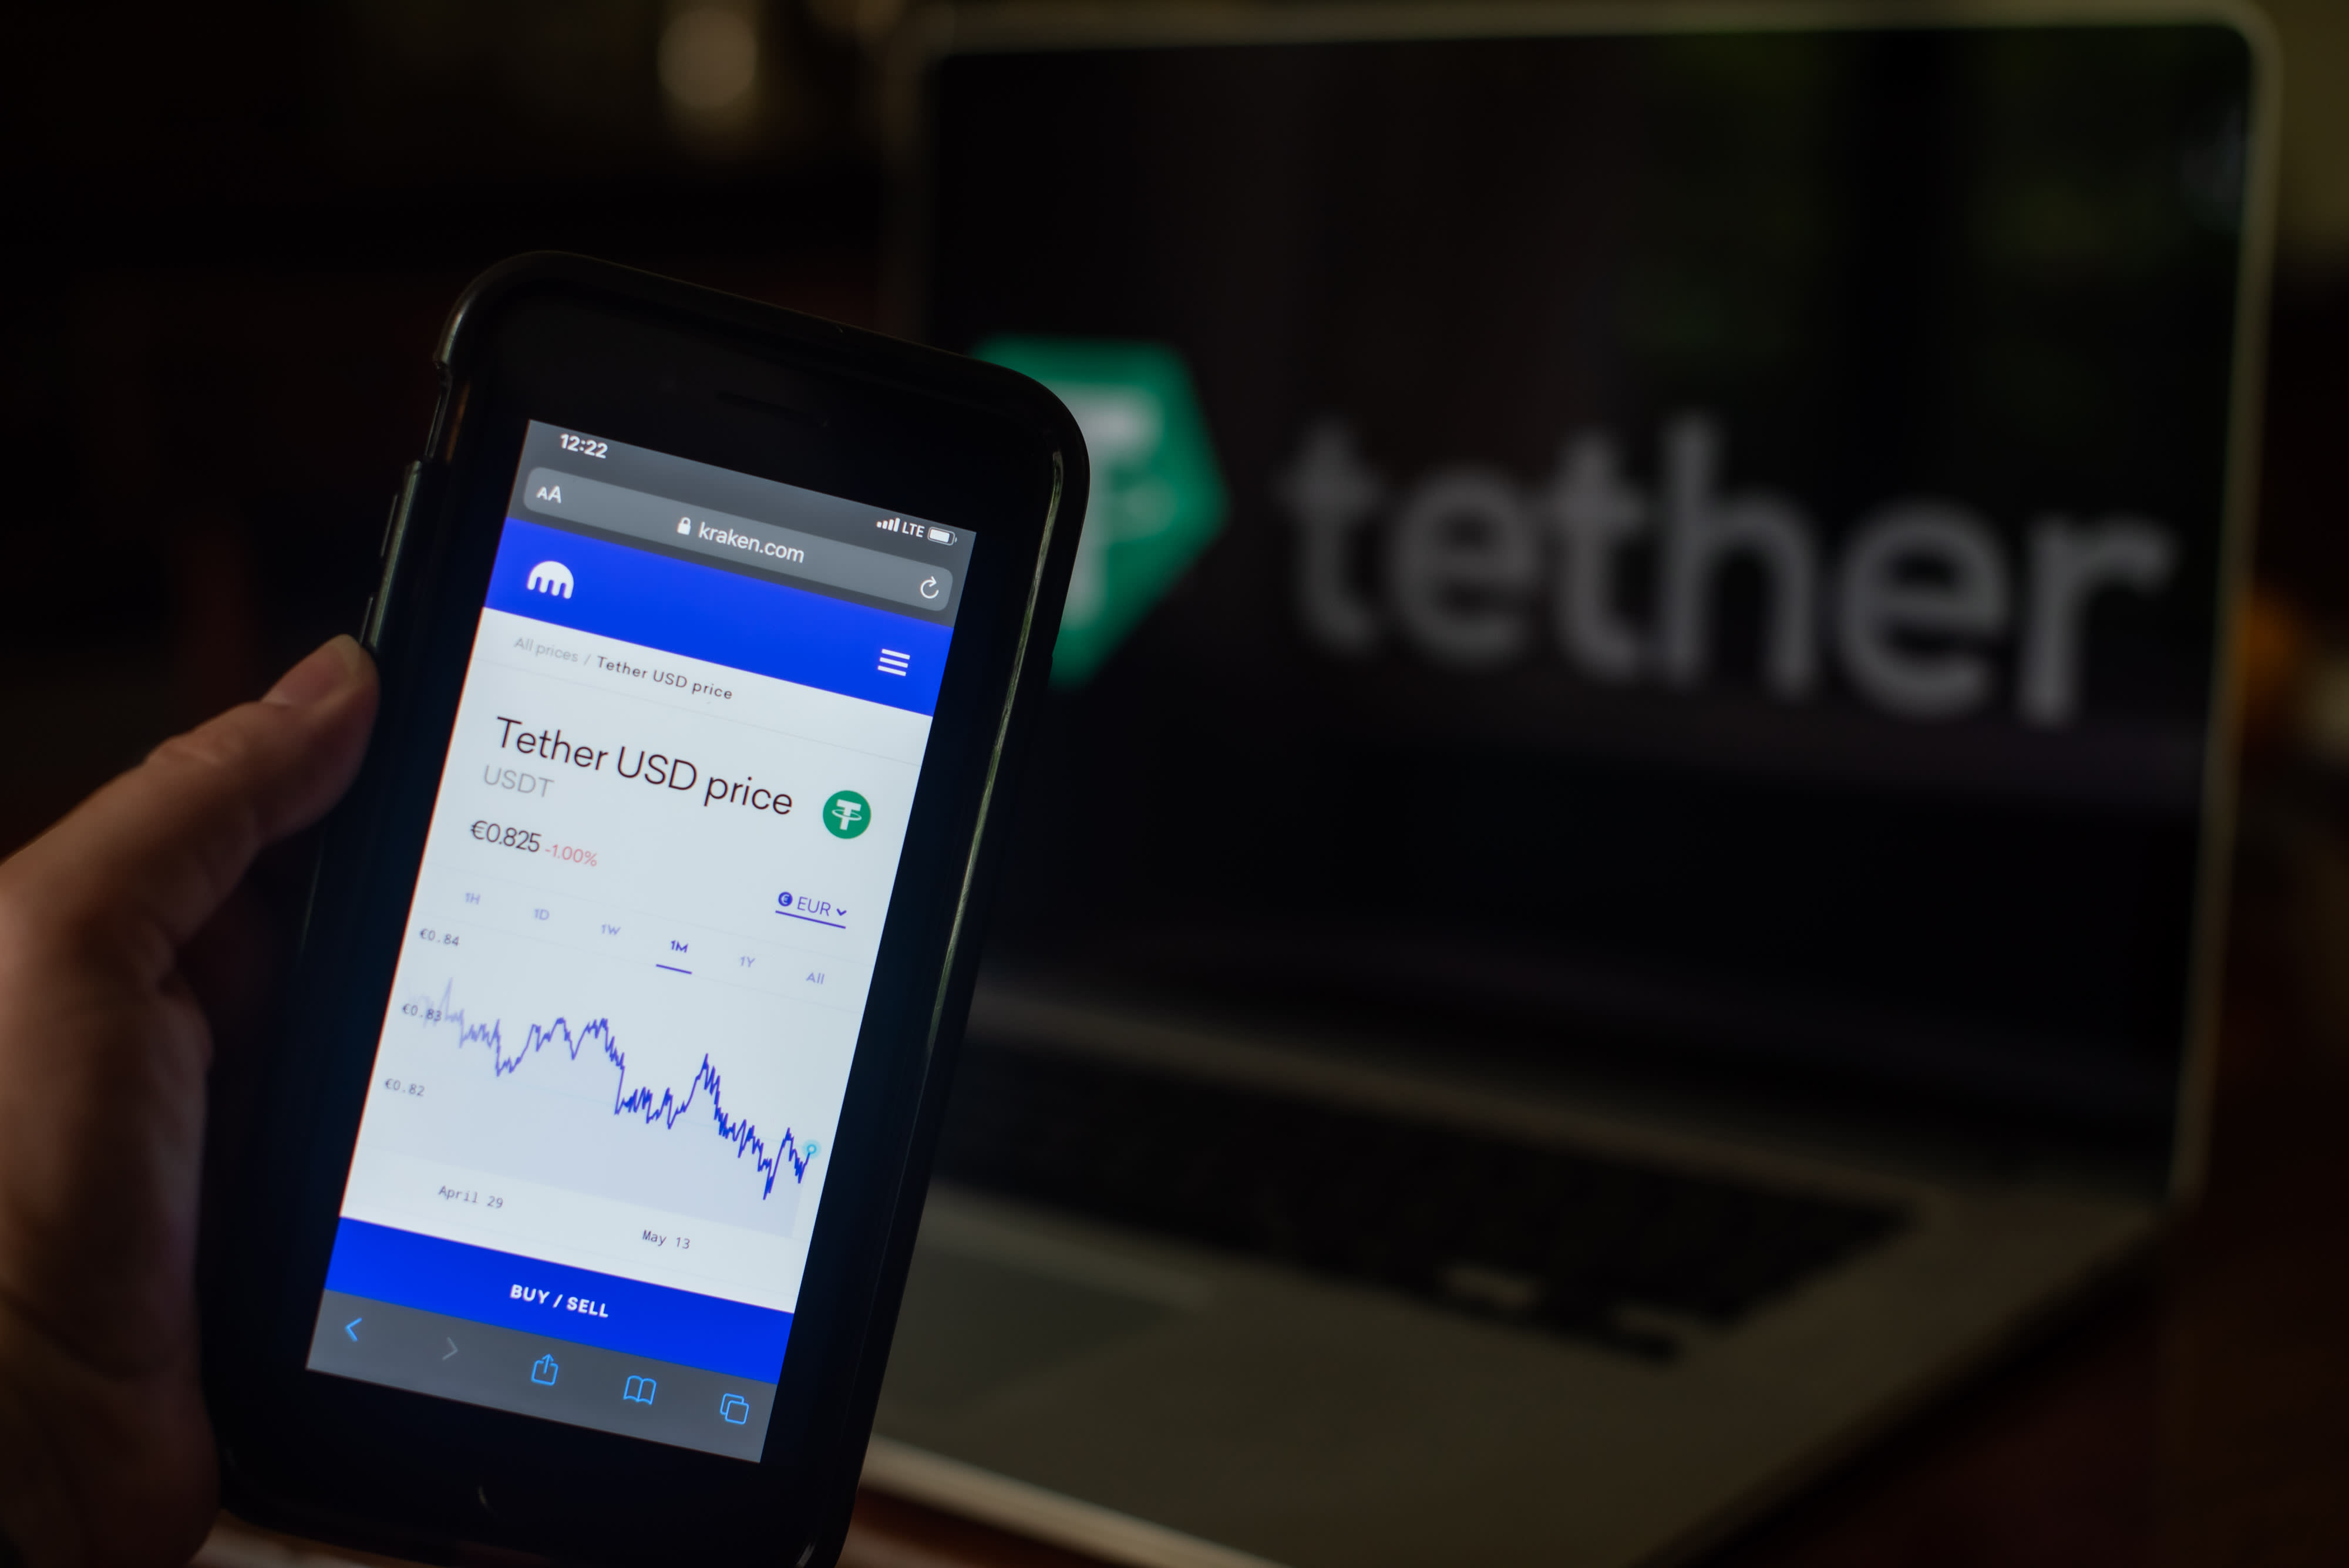 Why tether, the world's third-biggest cryptocurrency, has got economists worried